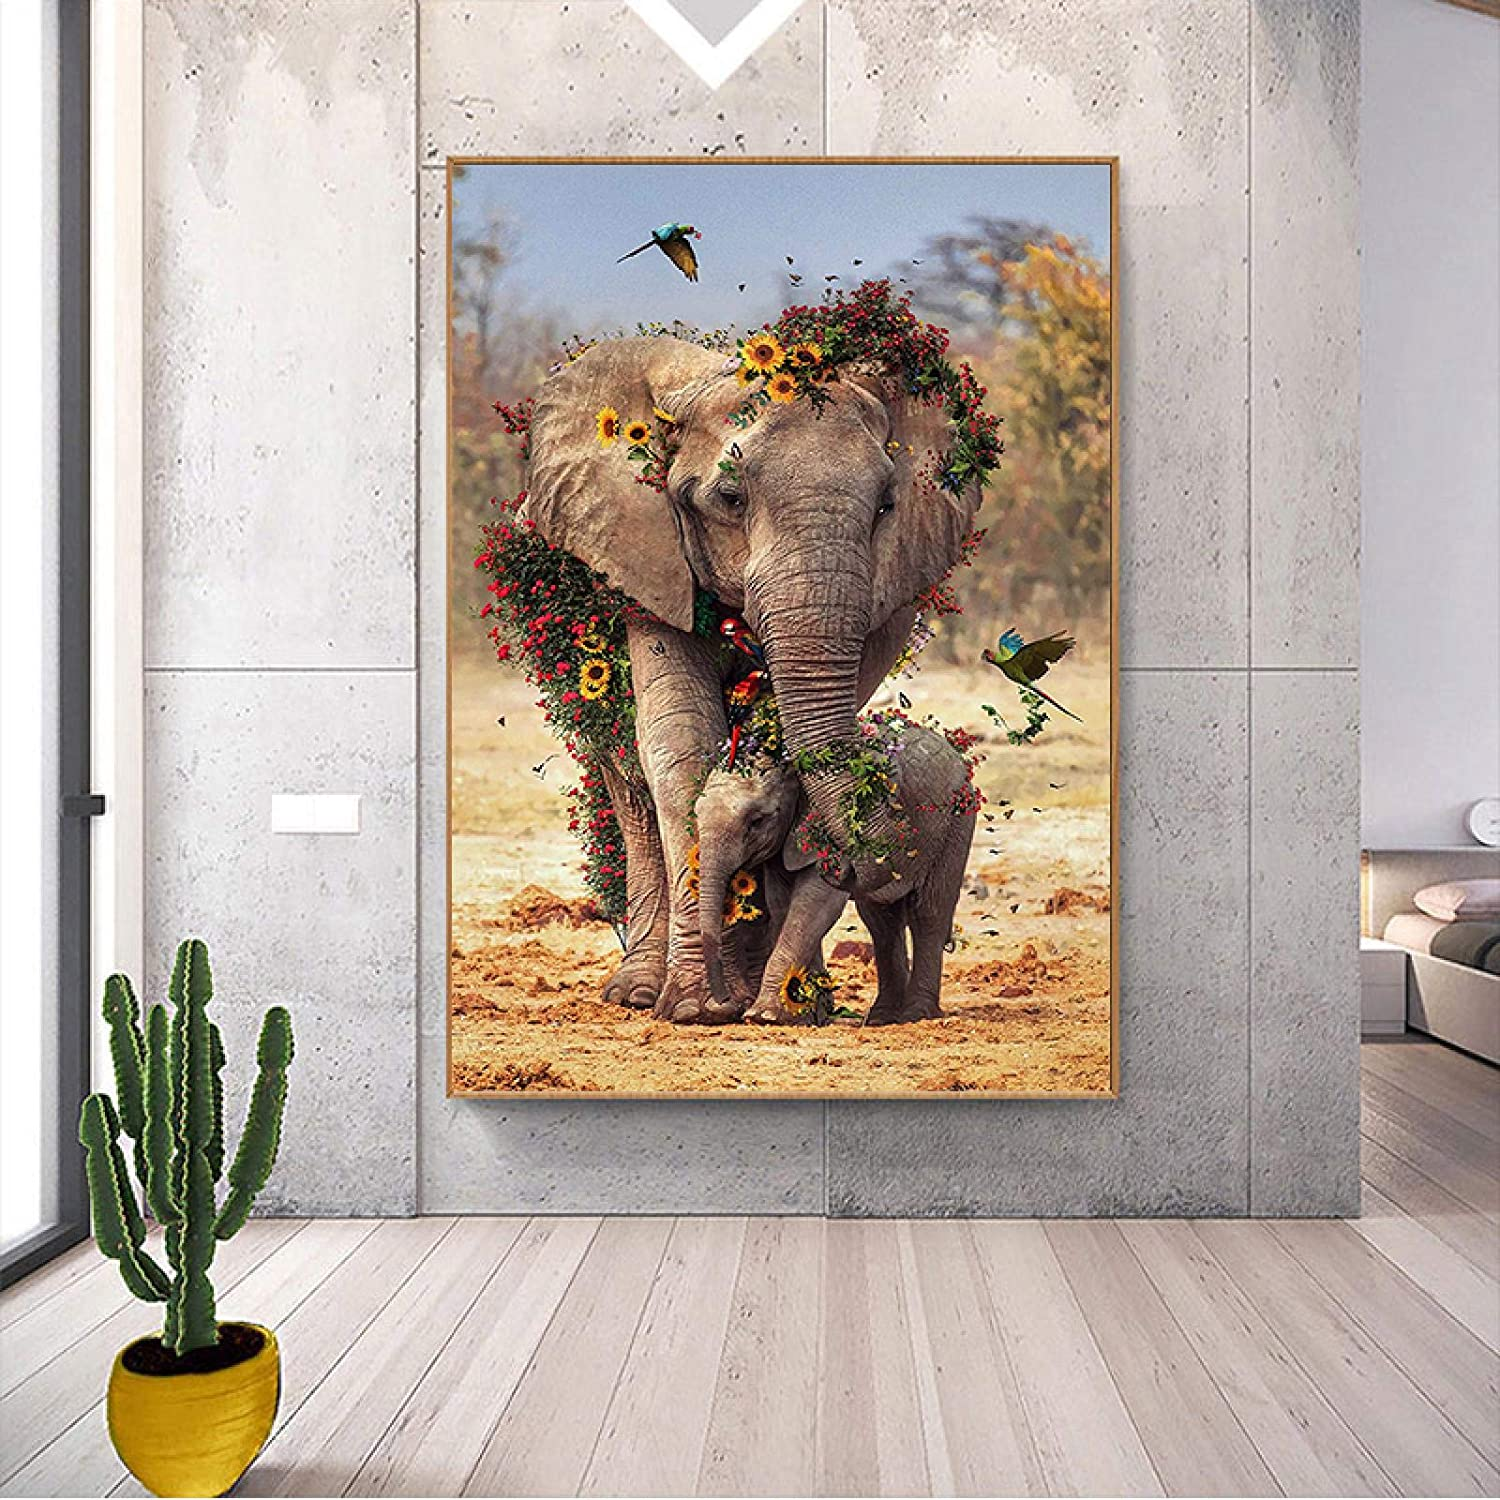 konkneleuh Elephant Price reduction Canvas Wall Art Pictures Animals for Our shop most popular African